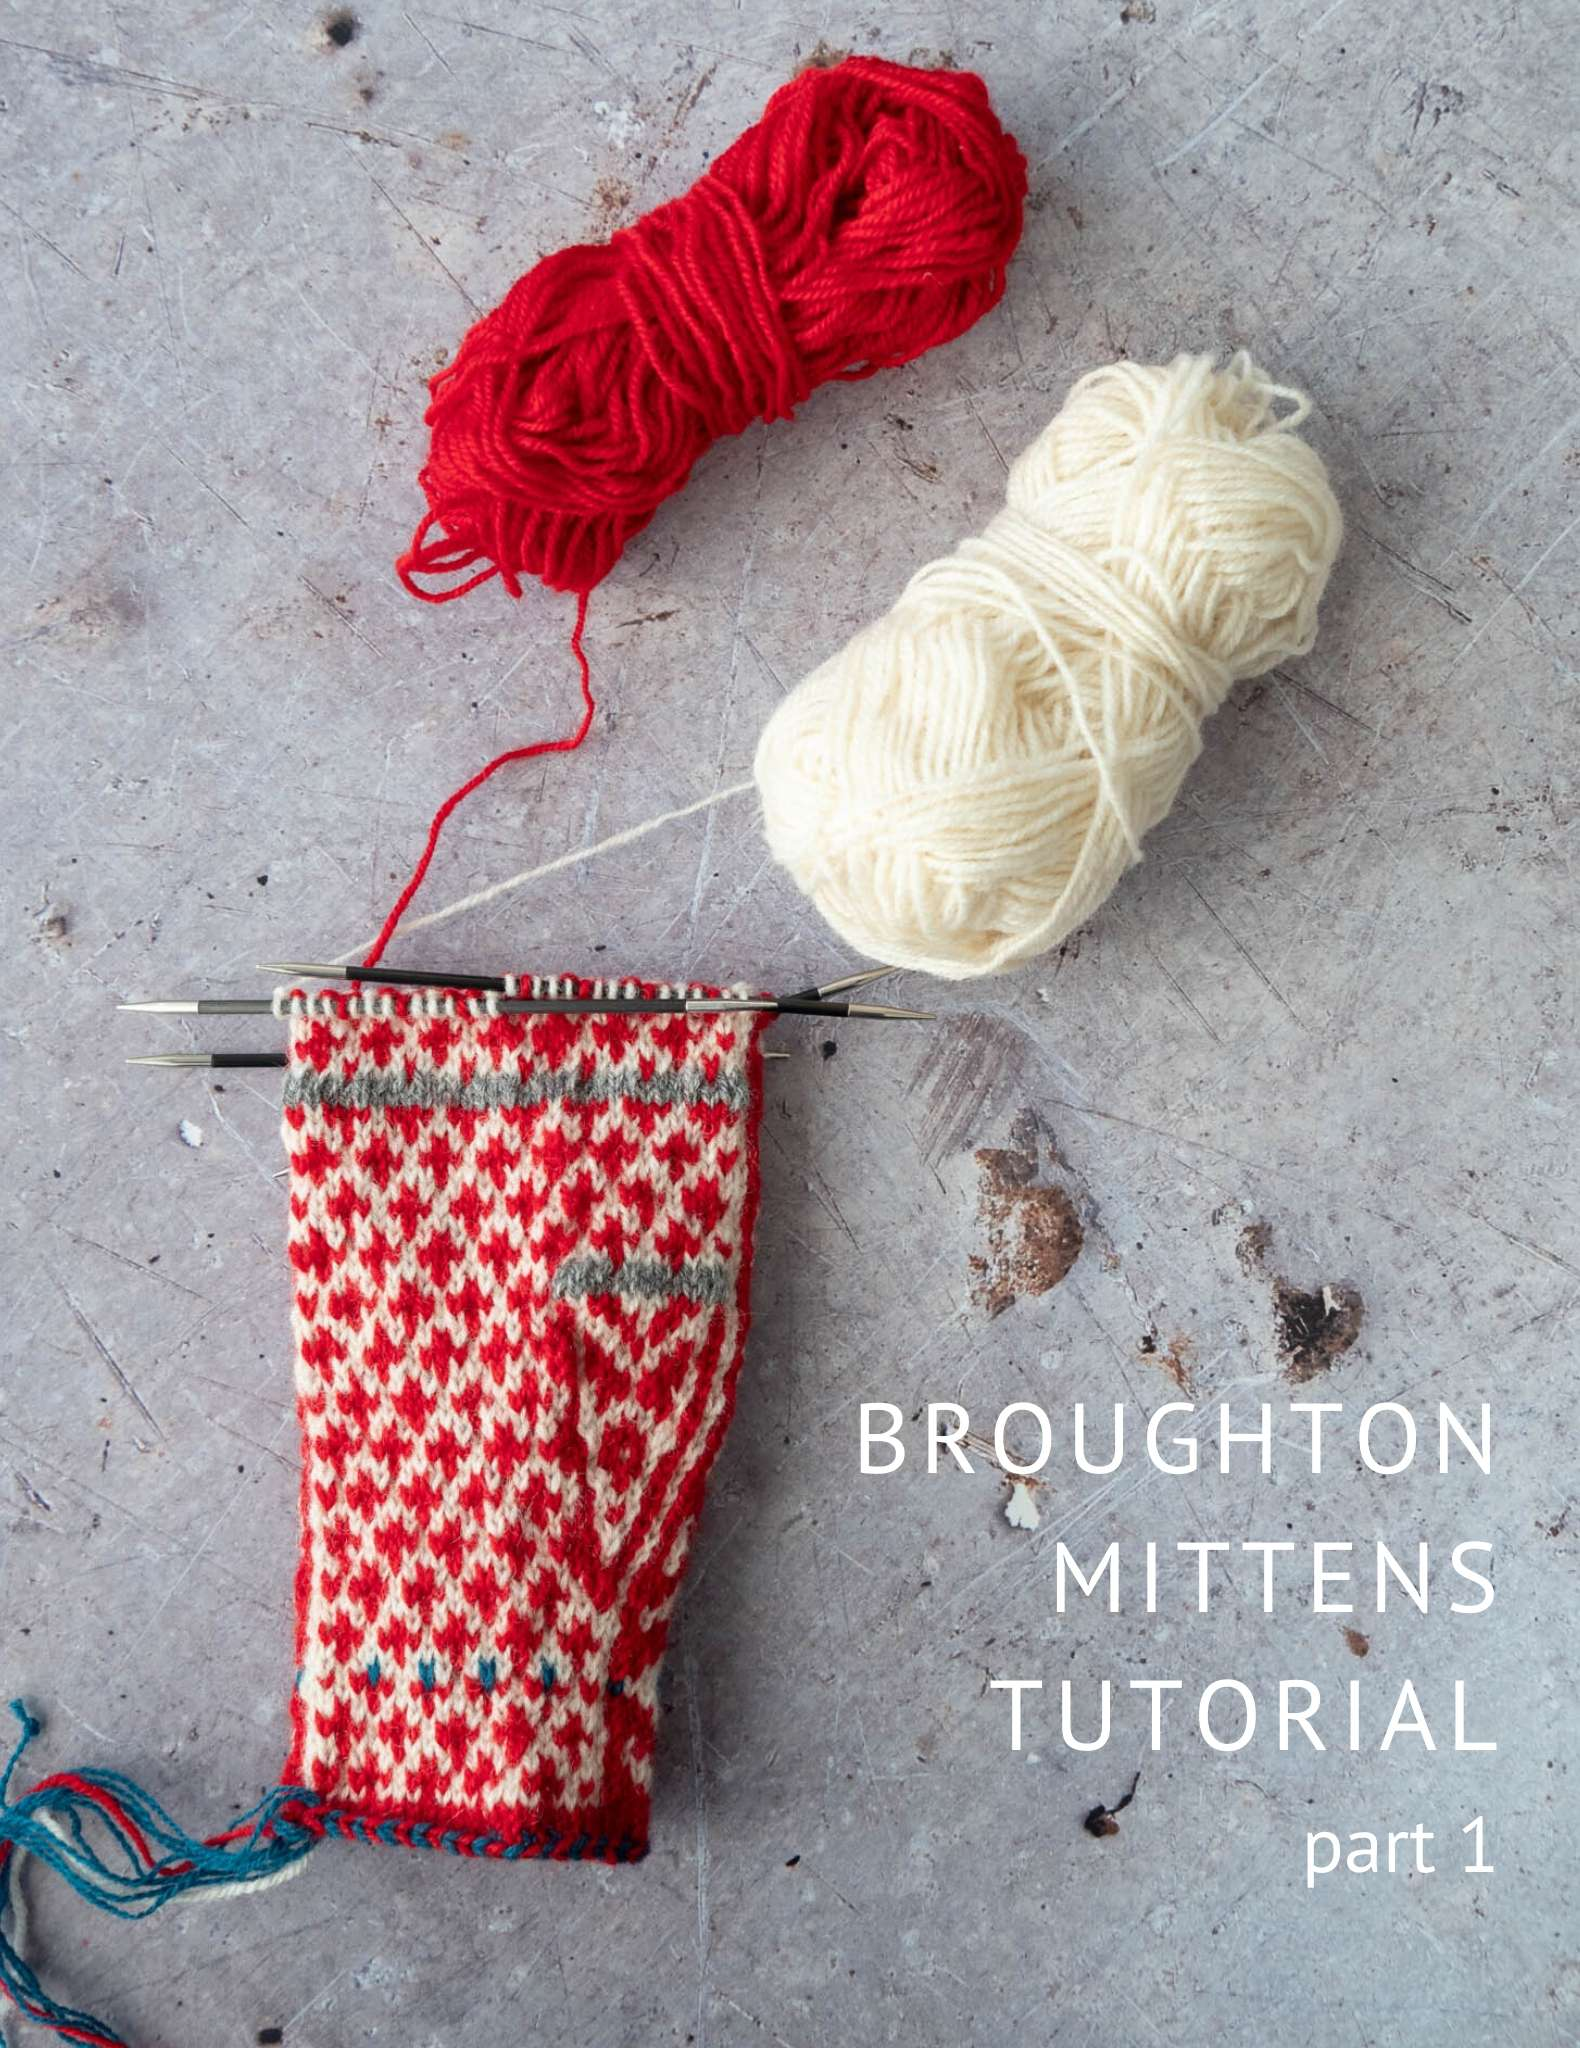 Broughton mittens tutorial part 1